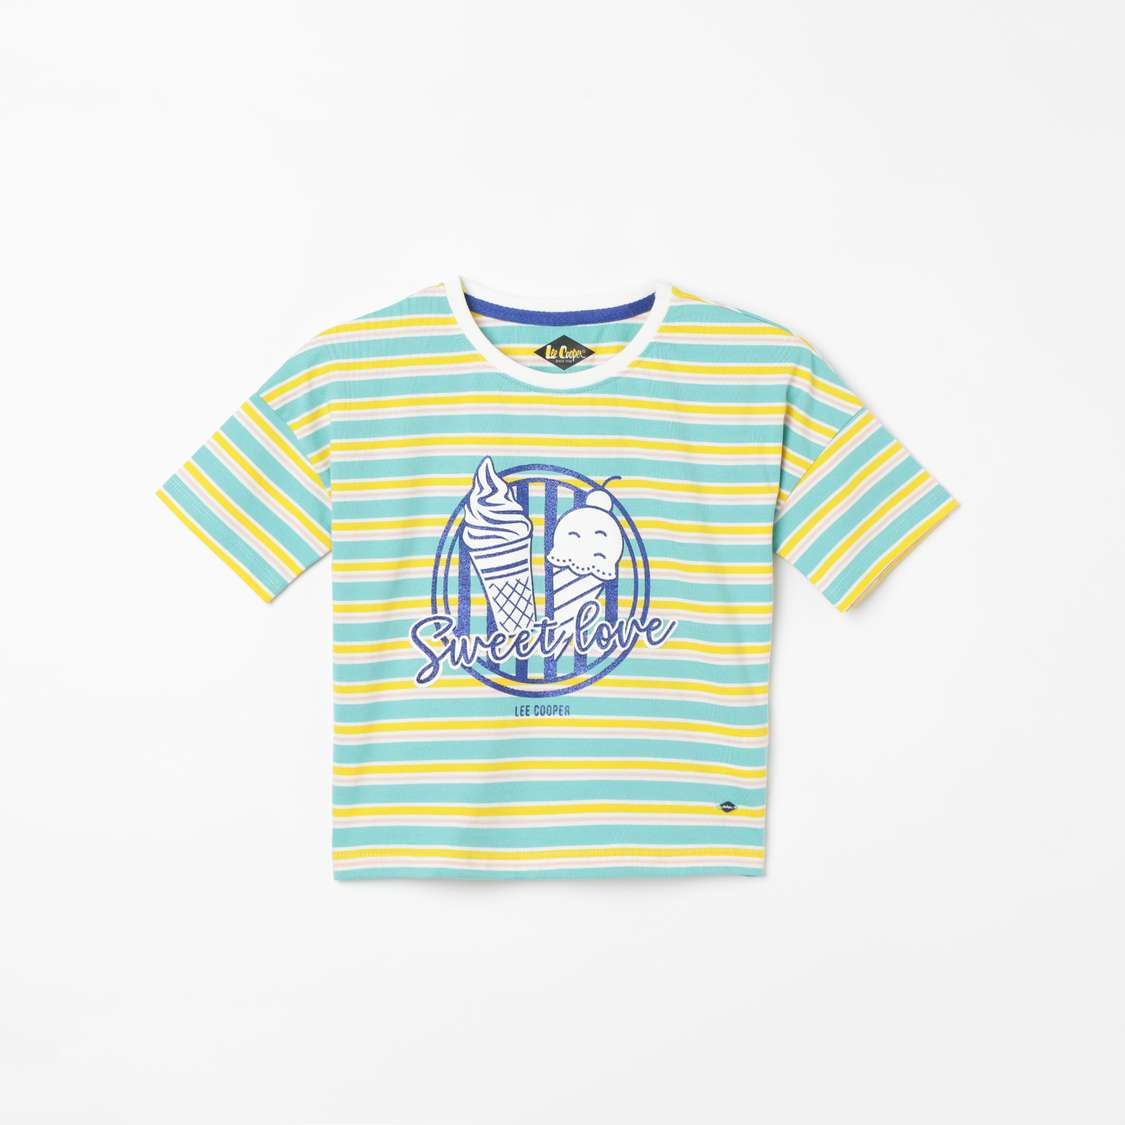 LEE COOPER JUNIORS Striped Extended Sleeves T-shirt - top clothing brands